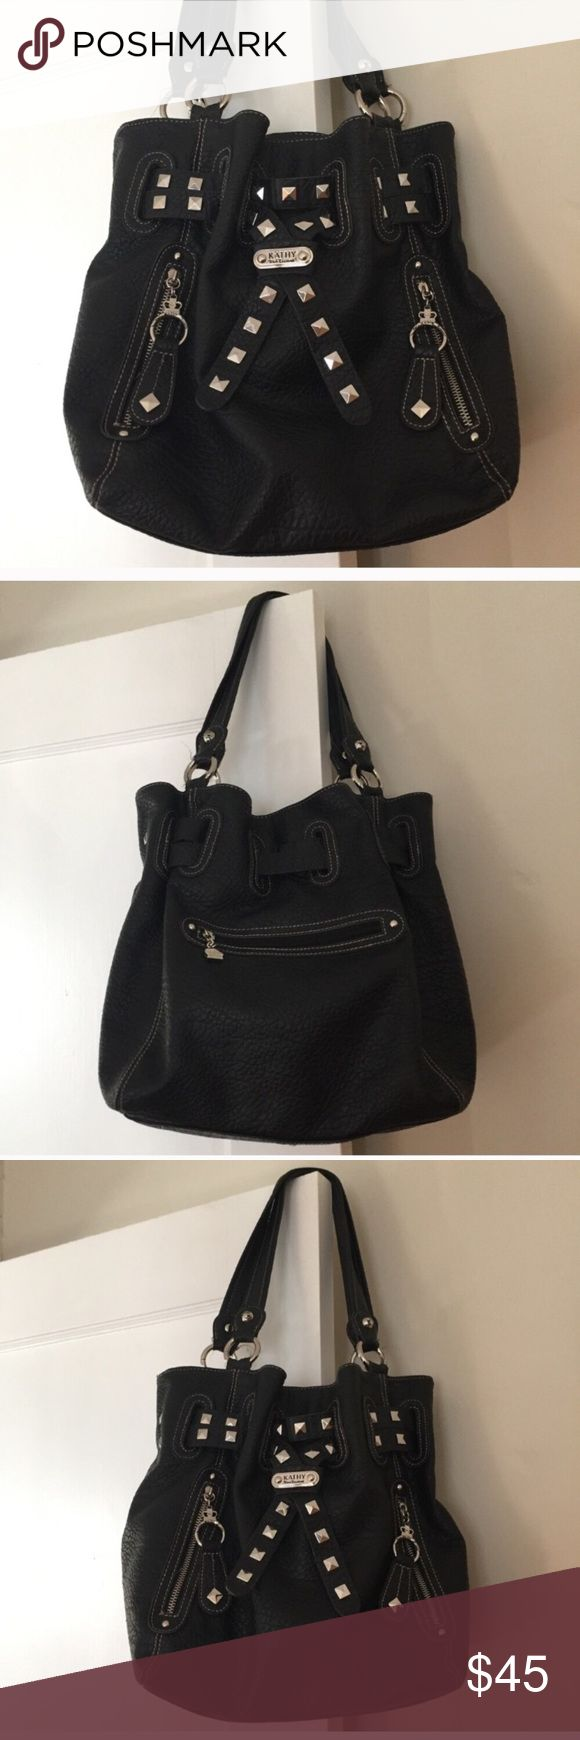 """Kathy Van Zeeland Large Black Bag Kathy Van Zeeland Large Black Bag - Shoulder strap with 11"""" drop and silver colored hardware - Top of Bag has magnetic closure - Interior features three compartments, one name/logo patch, 4 pockets and one with zipper.   - Exterior feature three zippered pockets. - Approx. 12""""H x 14""""W x 5""""D -Soft bag in like new condition. •••FIRM PRICE••• Kathy Van Zeeland Bags Shoulder Bags"""